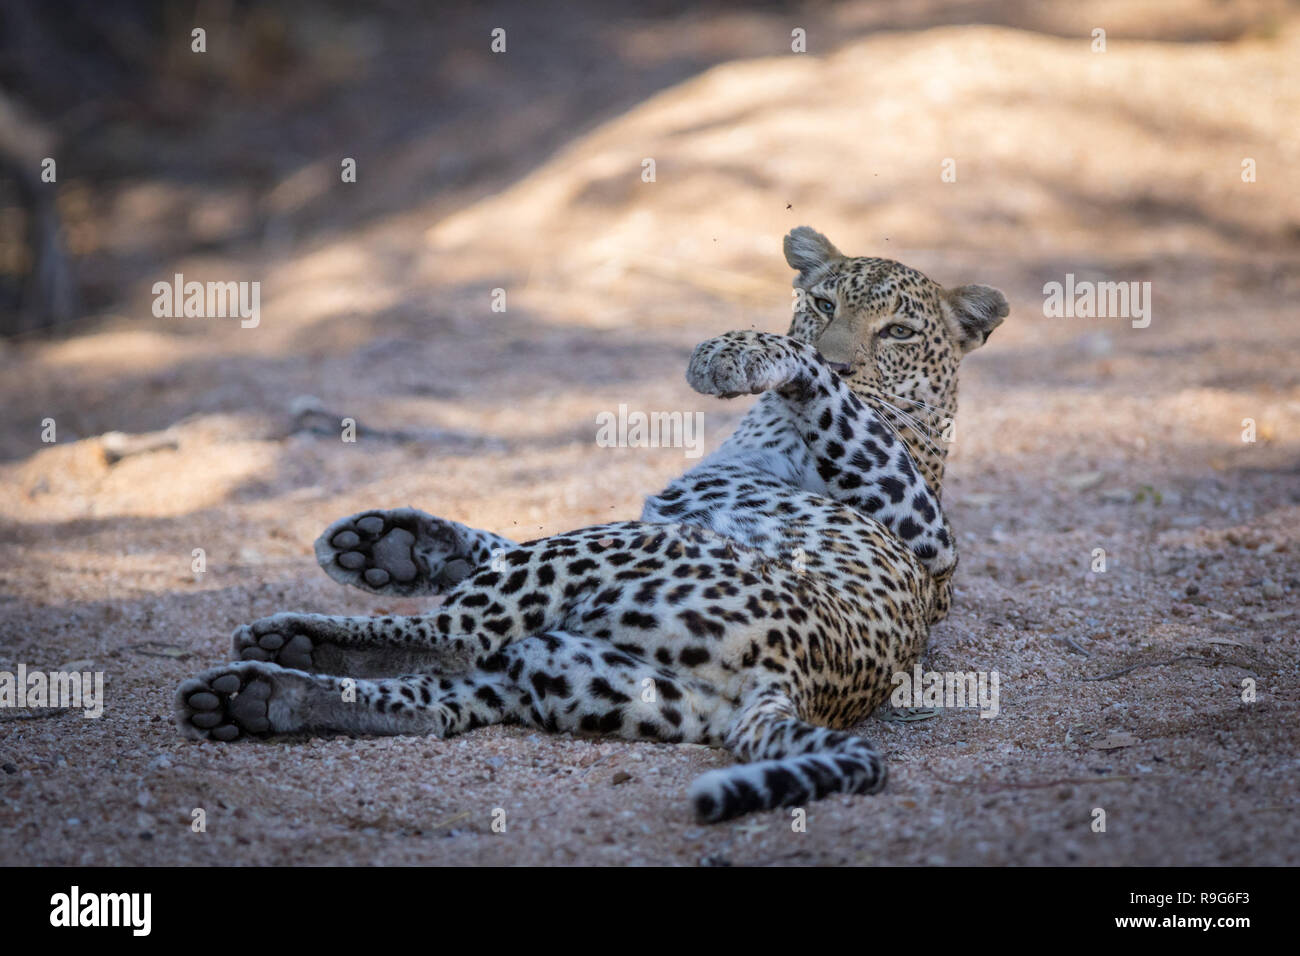 Lazy leopard rolling over. - Stock Image